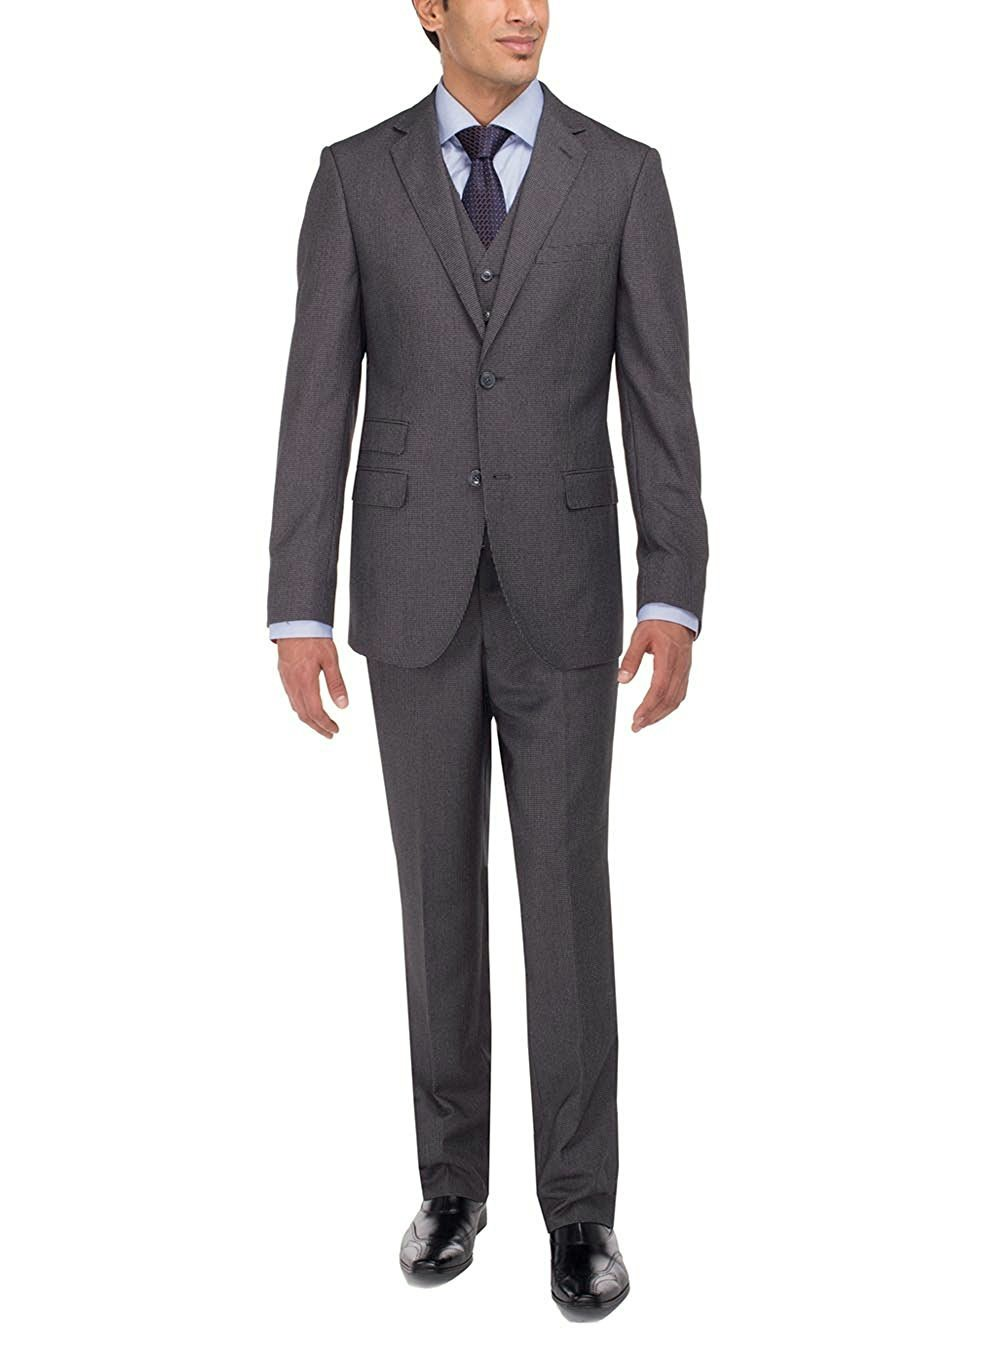 Luciano Natazzi Men's Two Button Tweed 3 Piece Modern Fit Vested Suit (46 Regular US / 56 Regular EU, Charcoal)